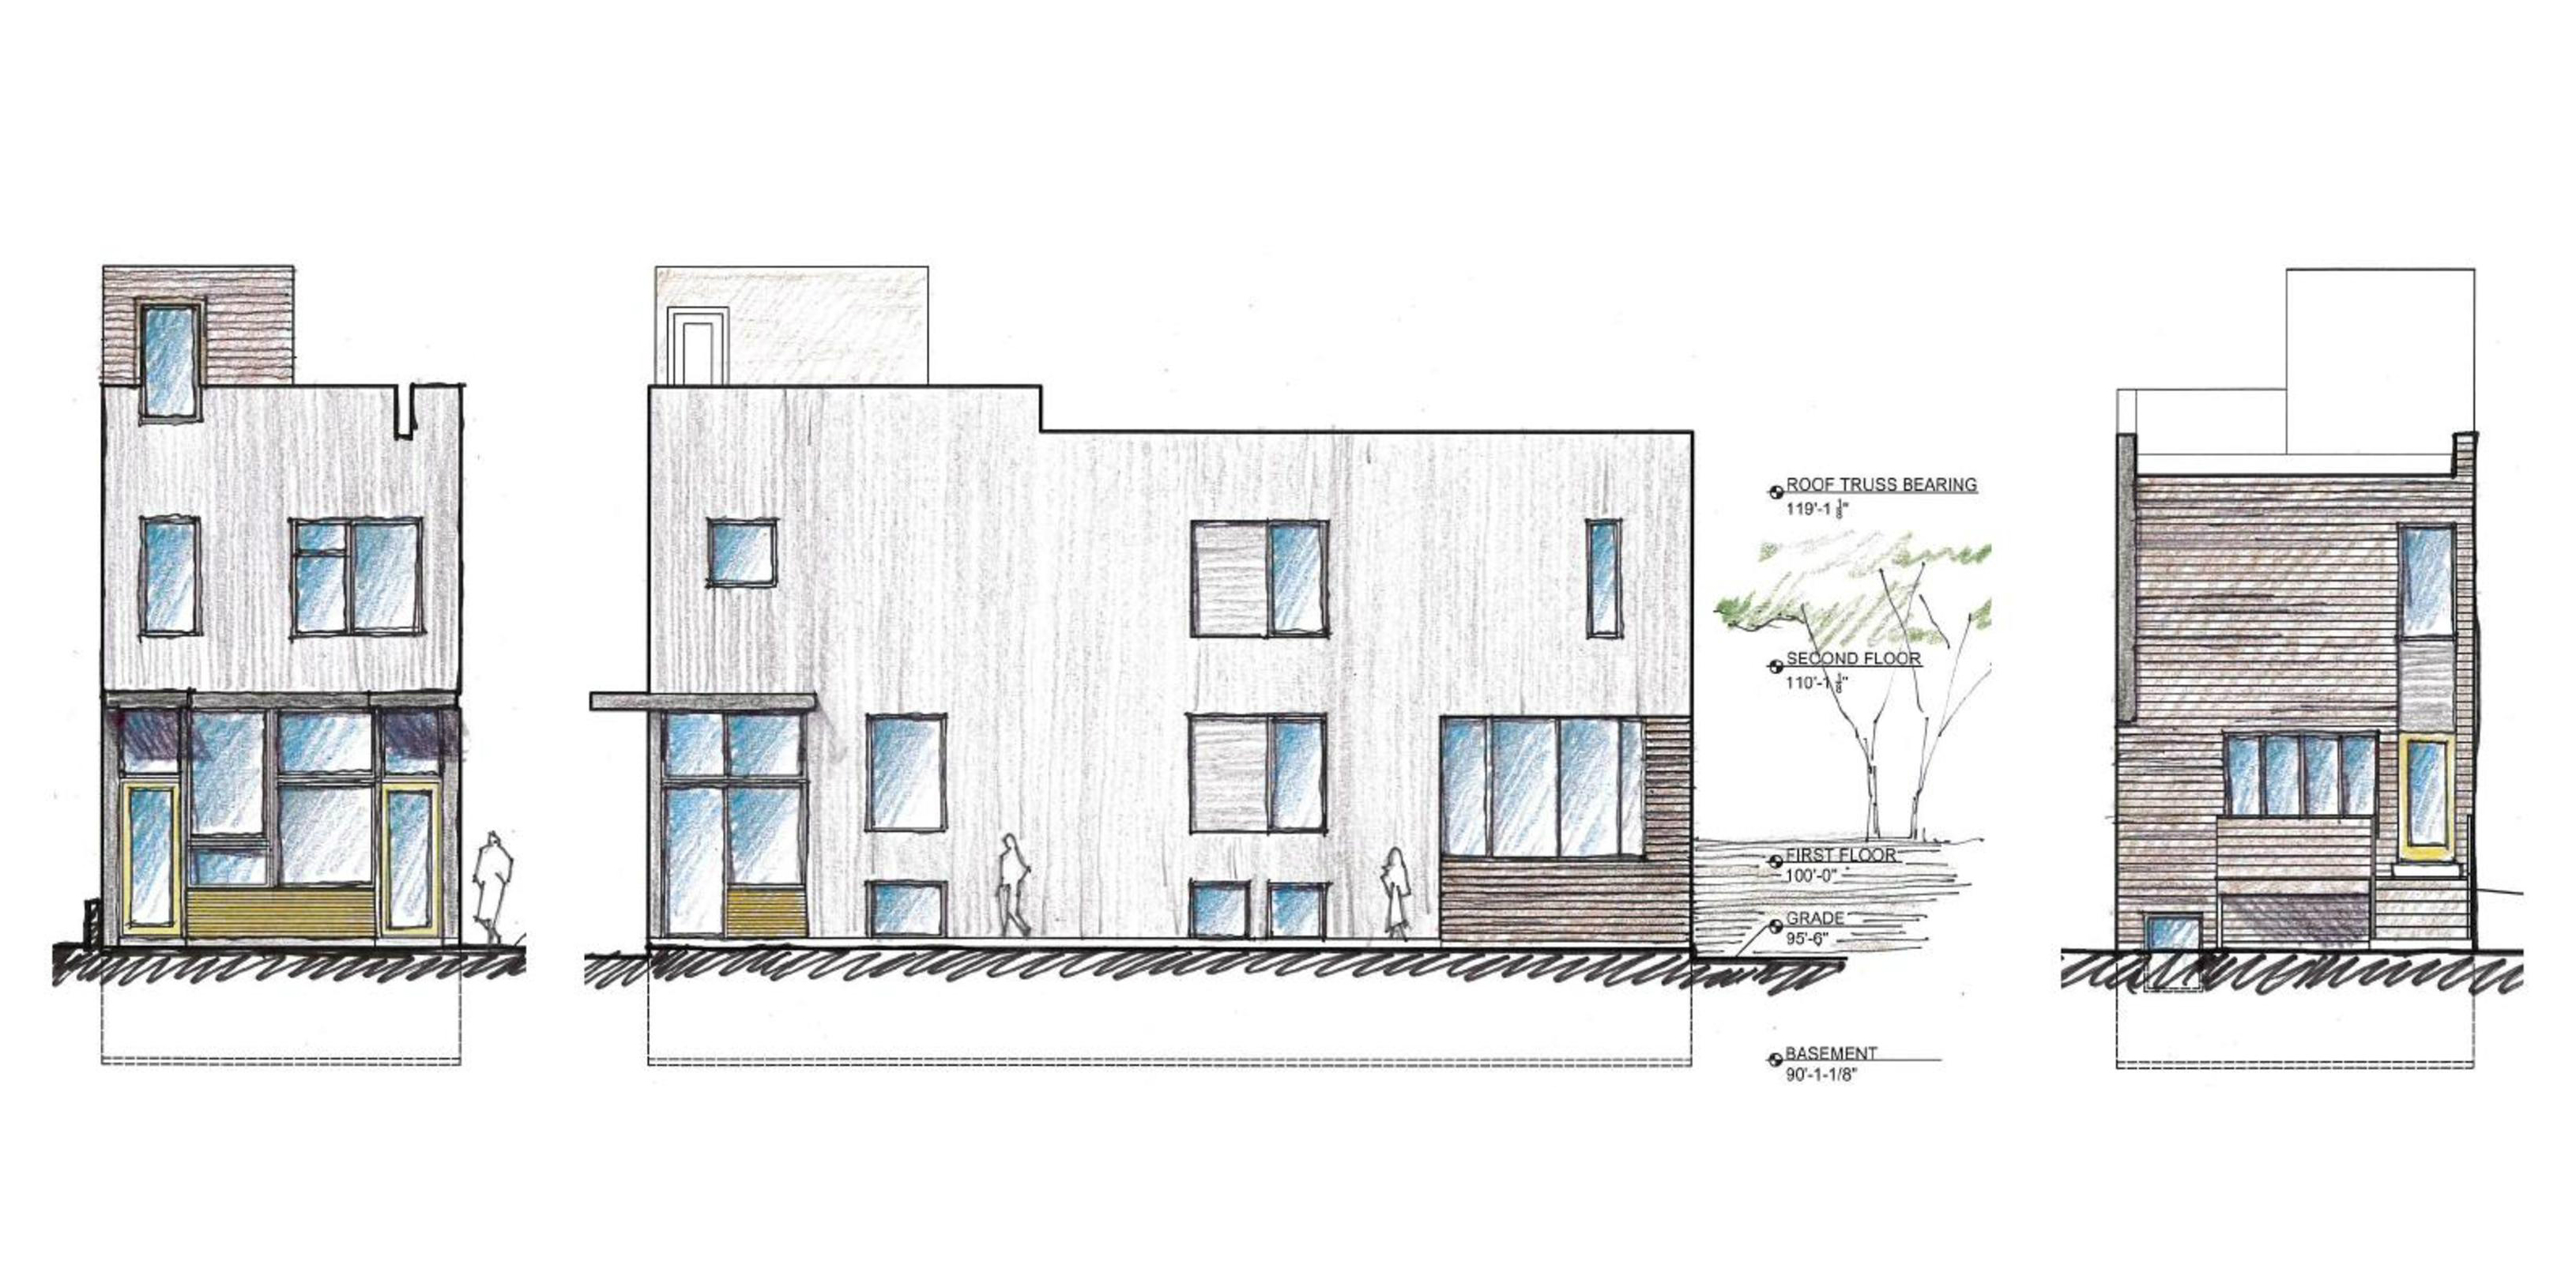 UIC Proposes Custom Residential Infill in The Grove, Seeks Tax Abatement